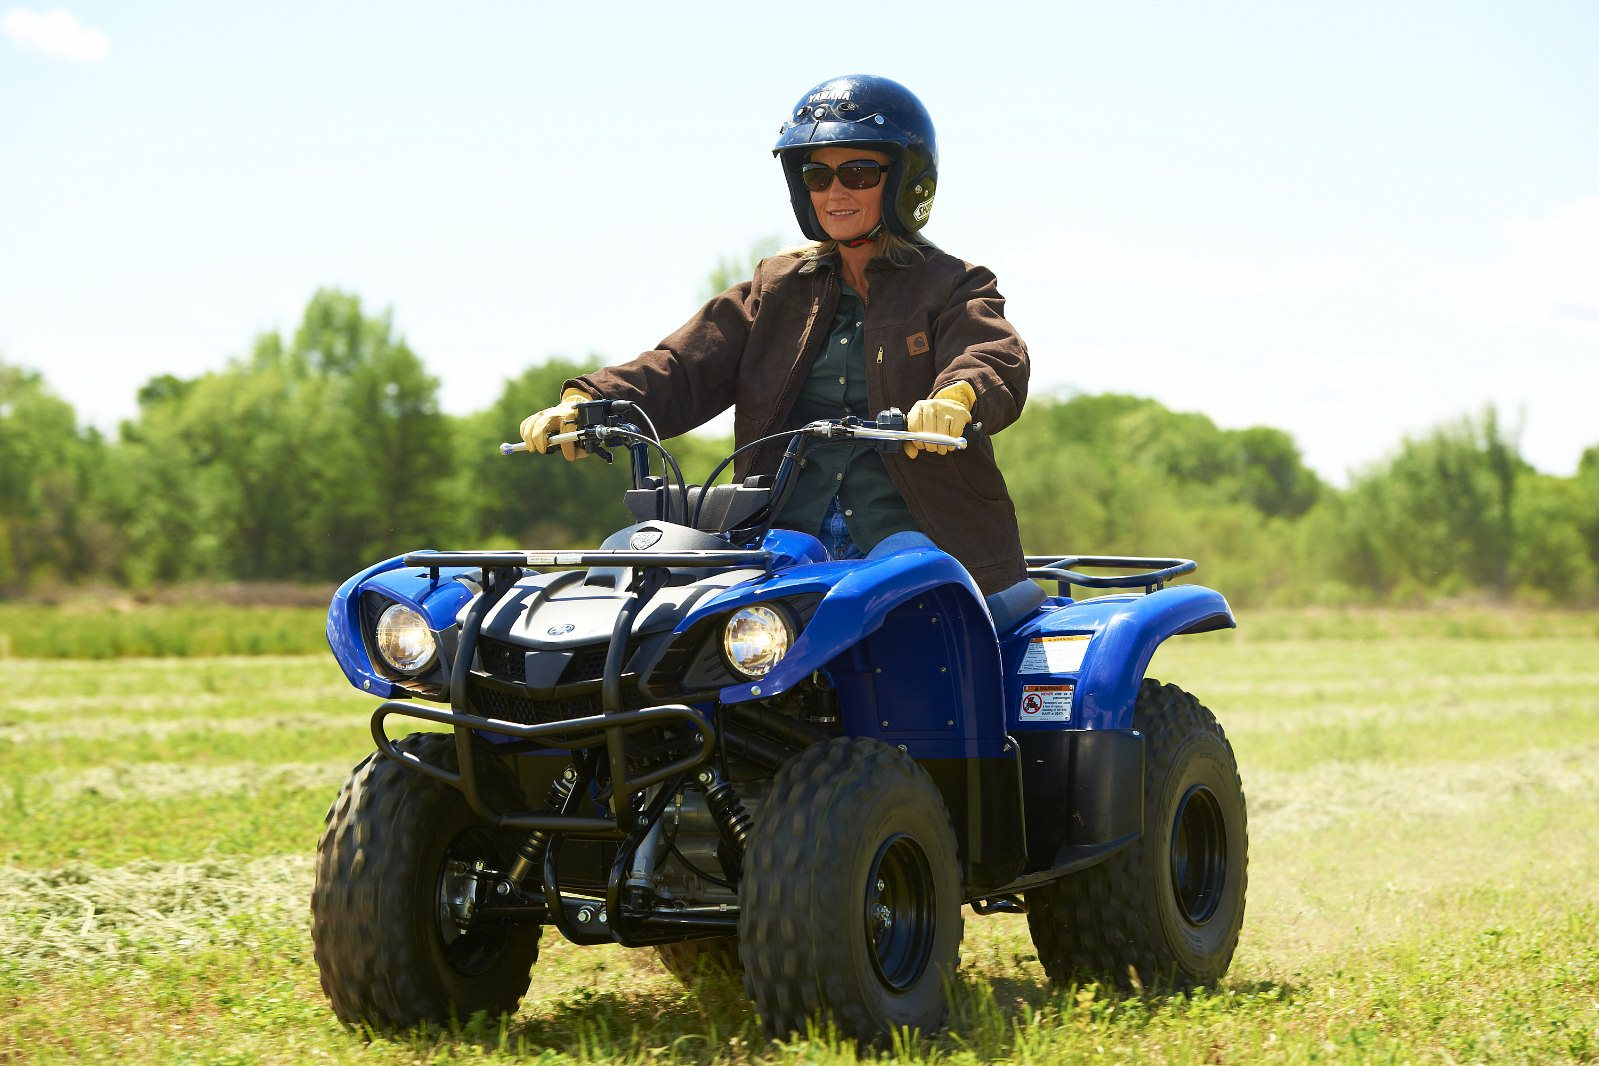 2012 Yamaha Grizzly 125 Automatic | Top Speed